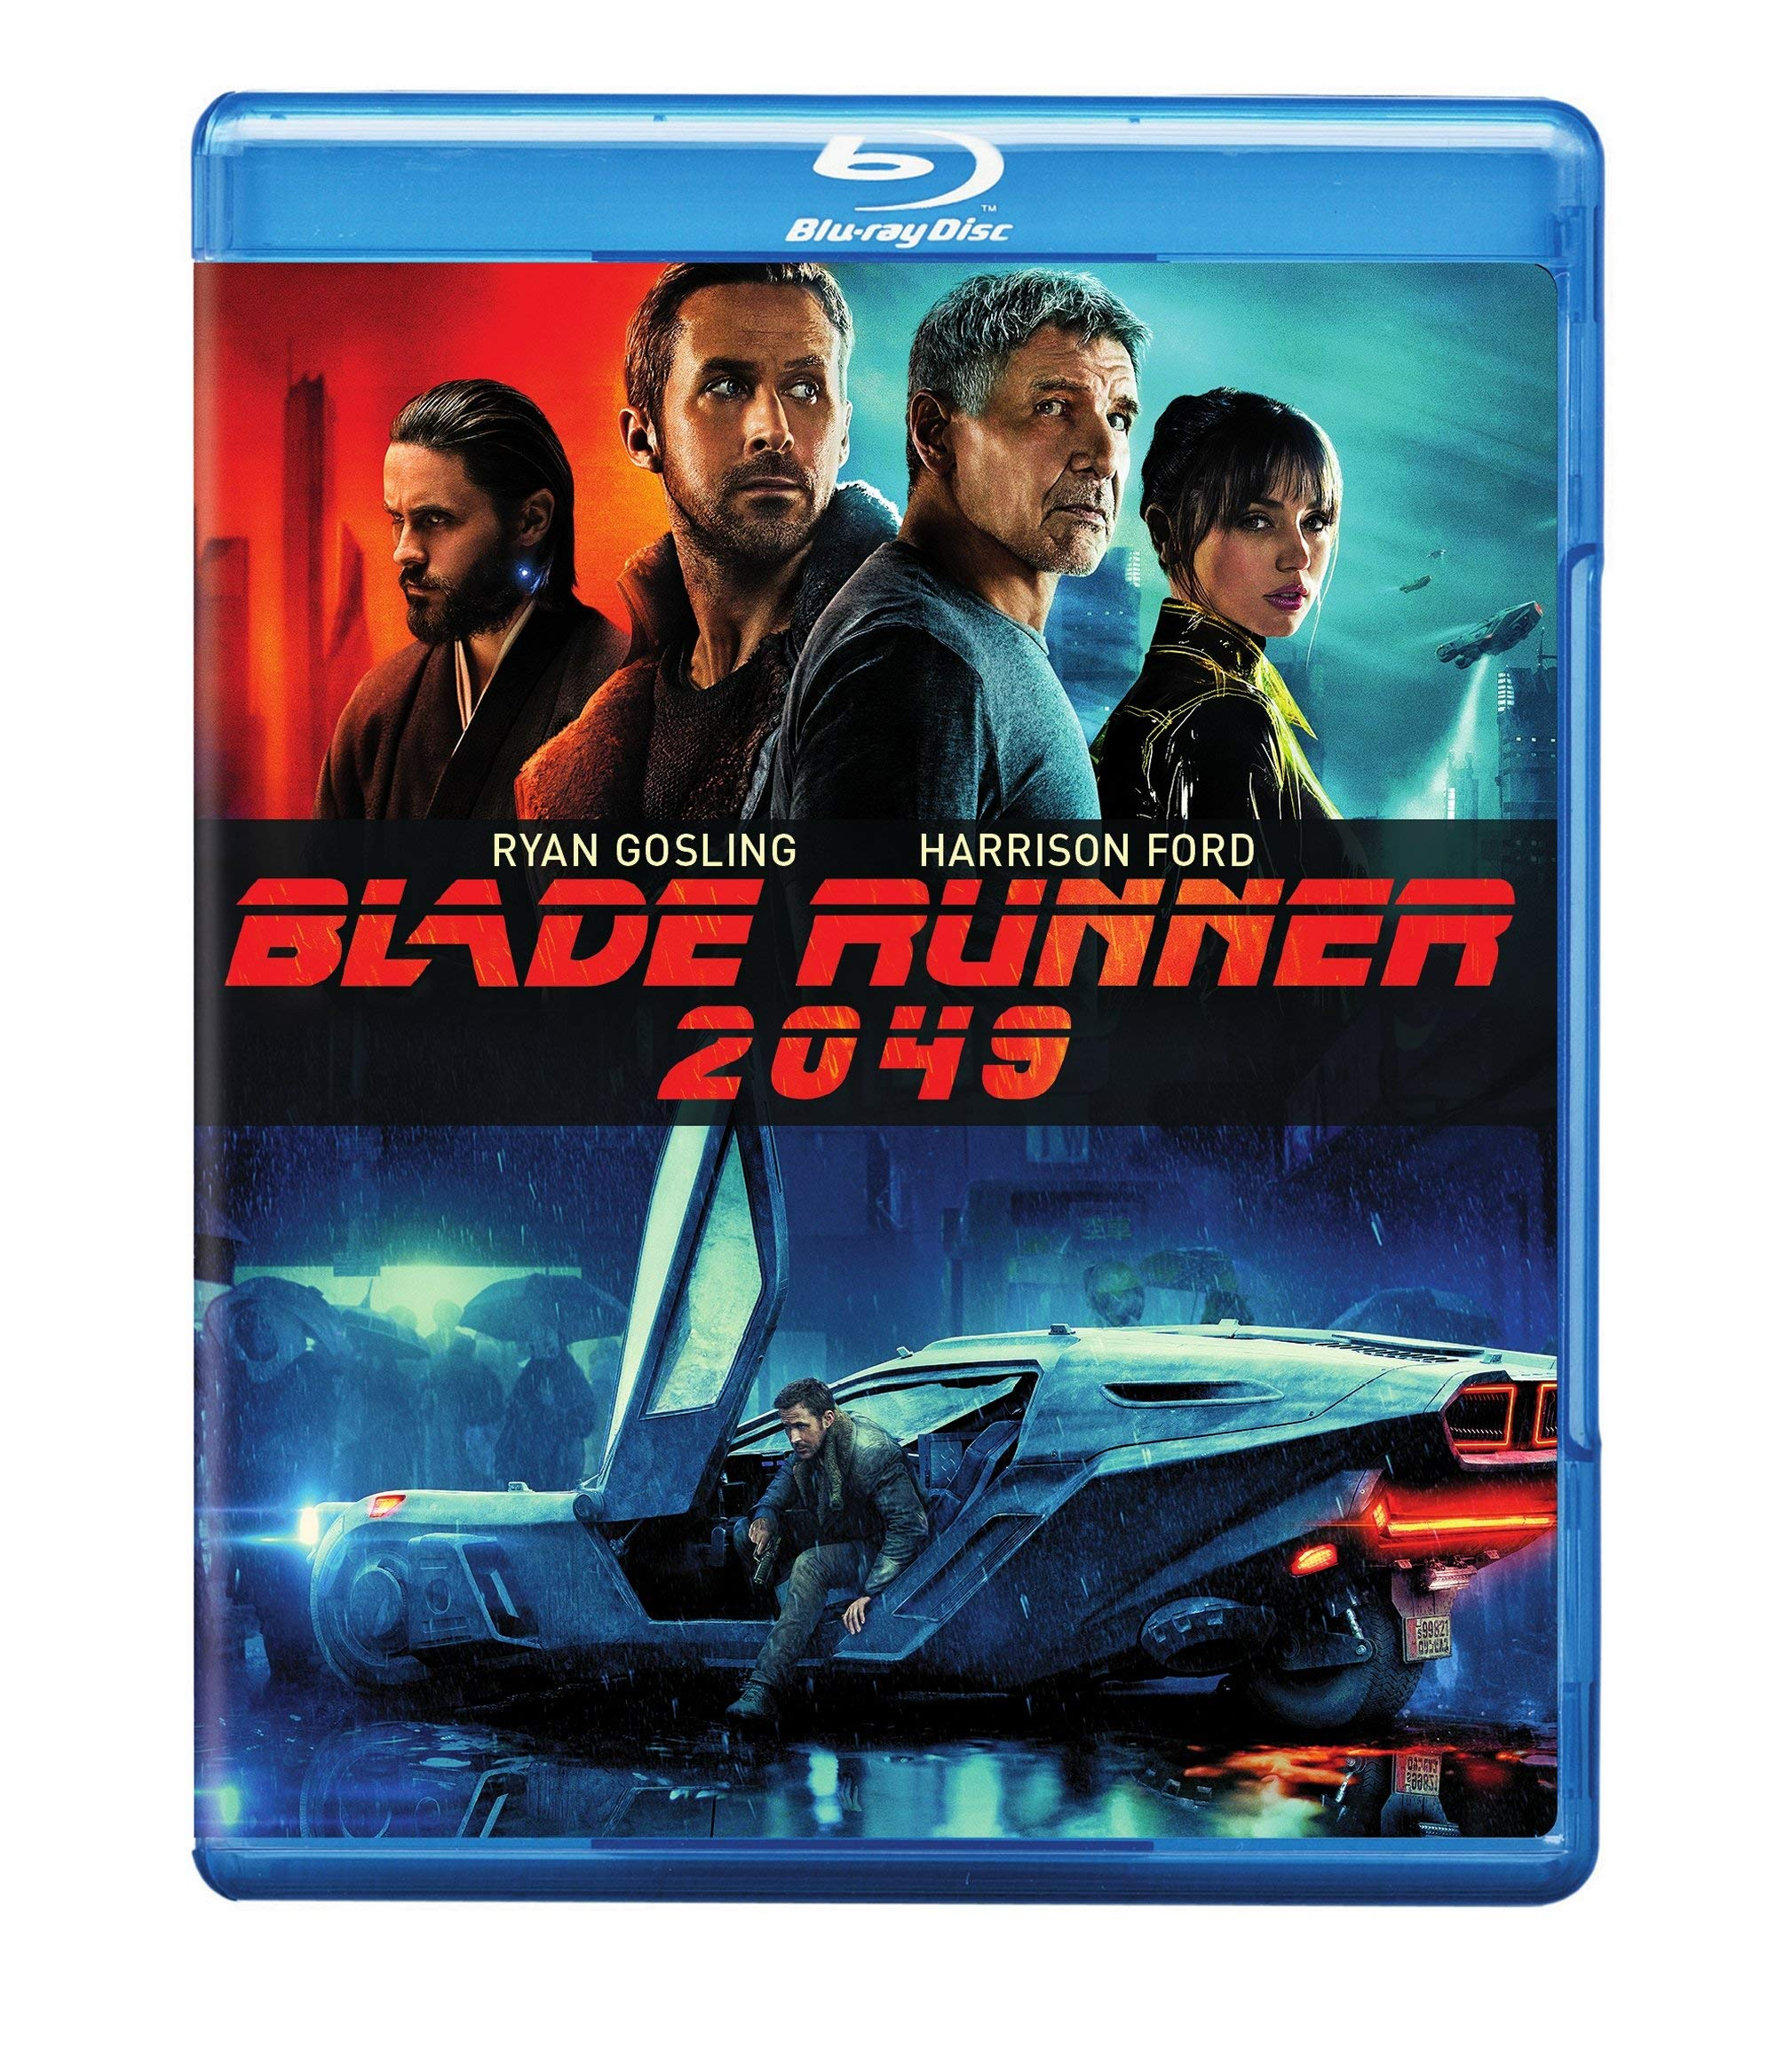 - 91OYV7kDL3L - Blade Runner 2049 (Blu-ray) (BD) electronics - 91OYV7kDL3L - Home Page